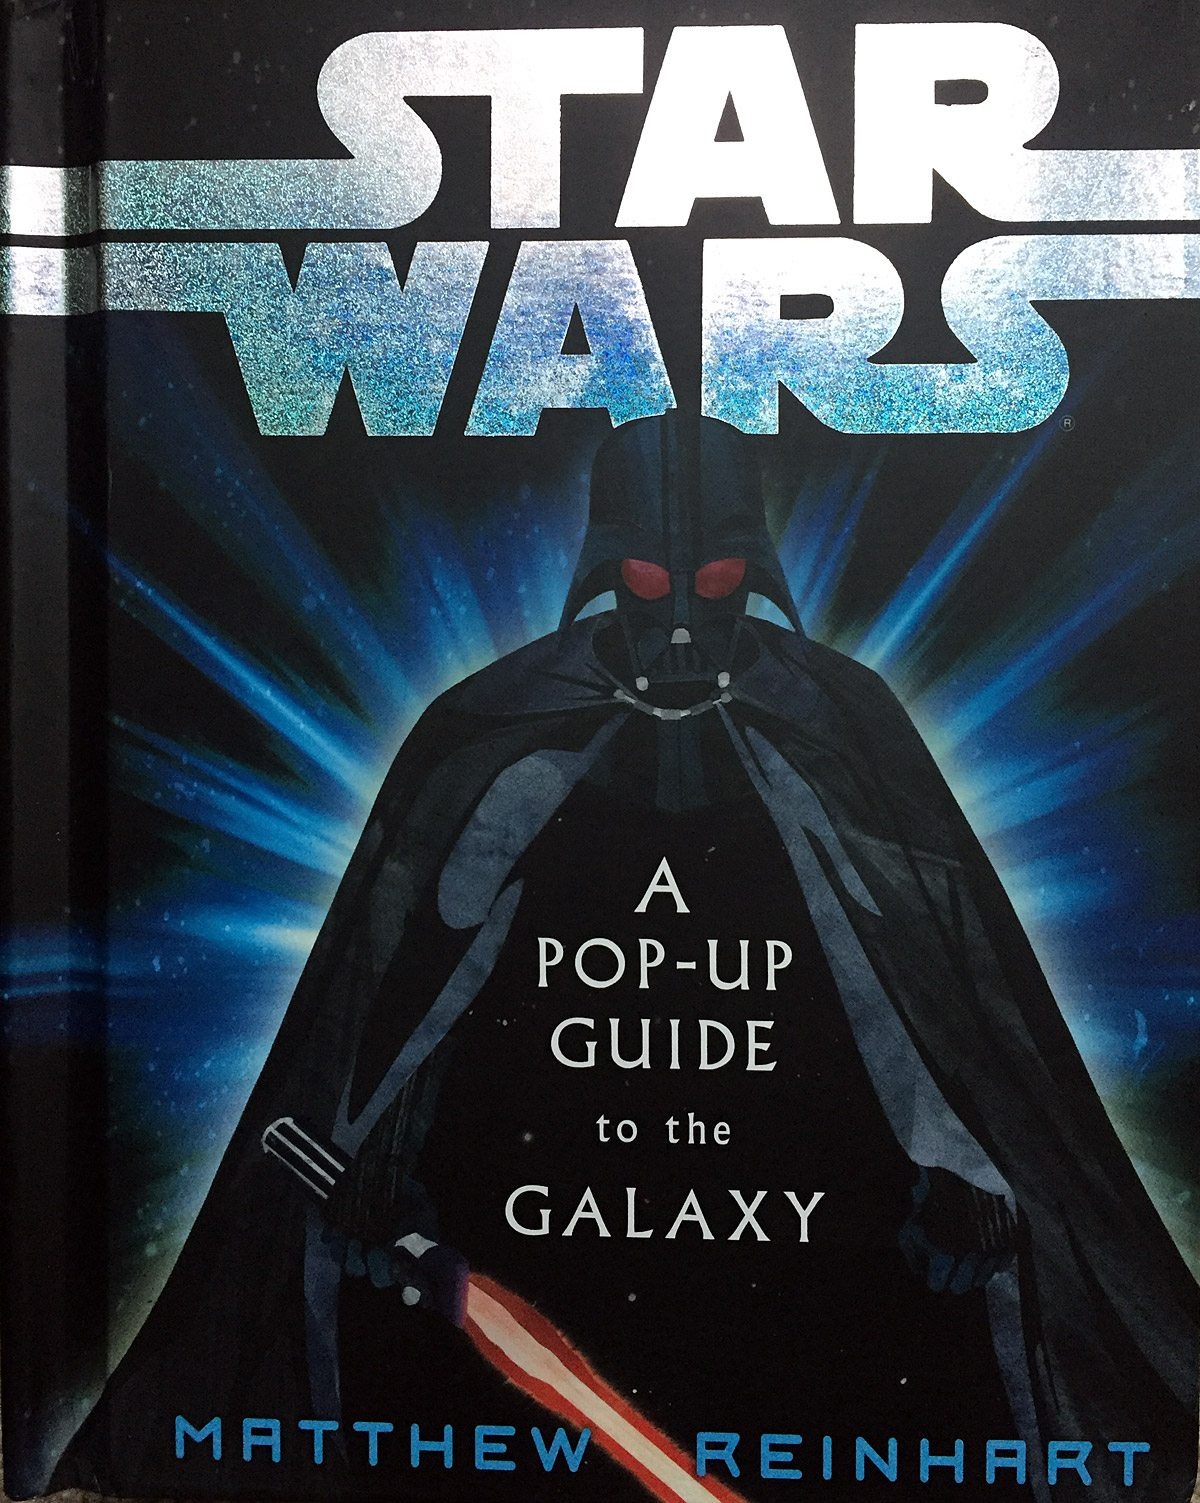 StarWarsPopup-Cover